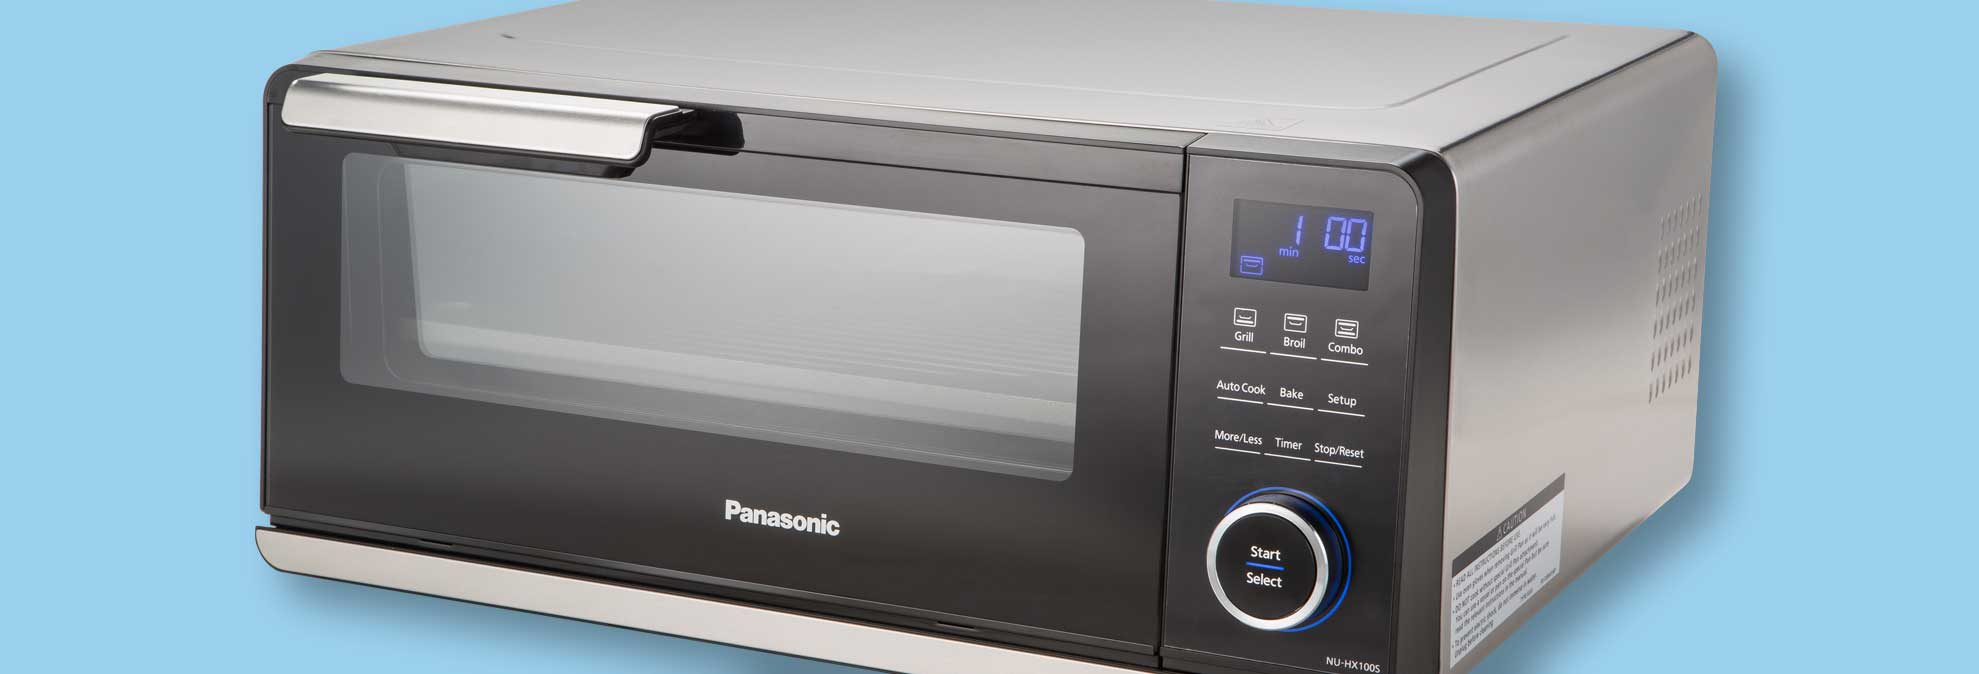 Panasonic Countertop Induction Oven Review Consumer Reports